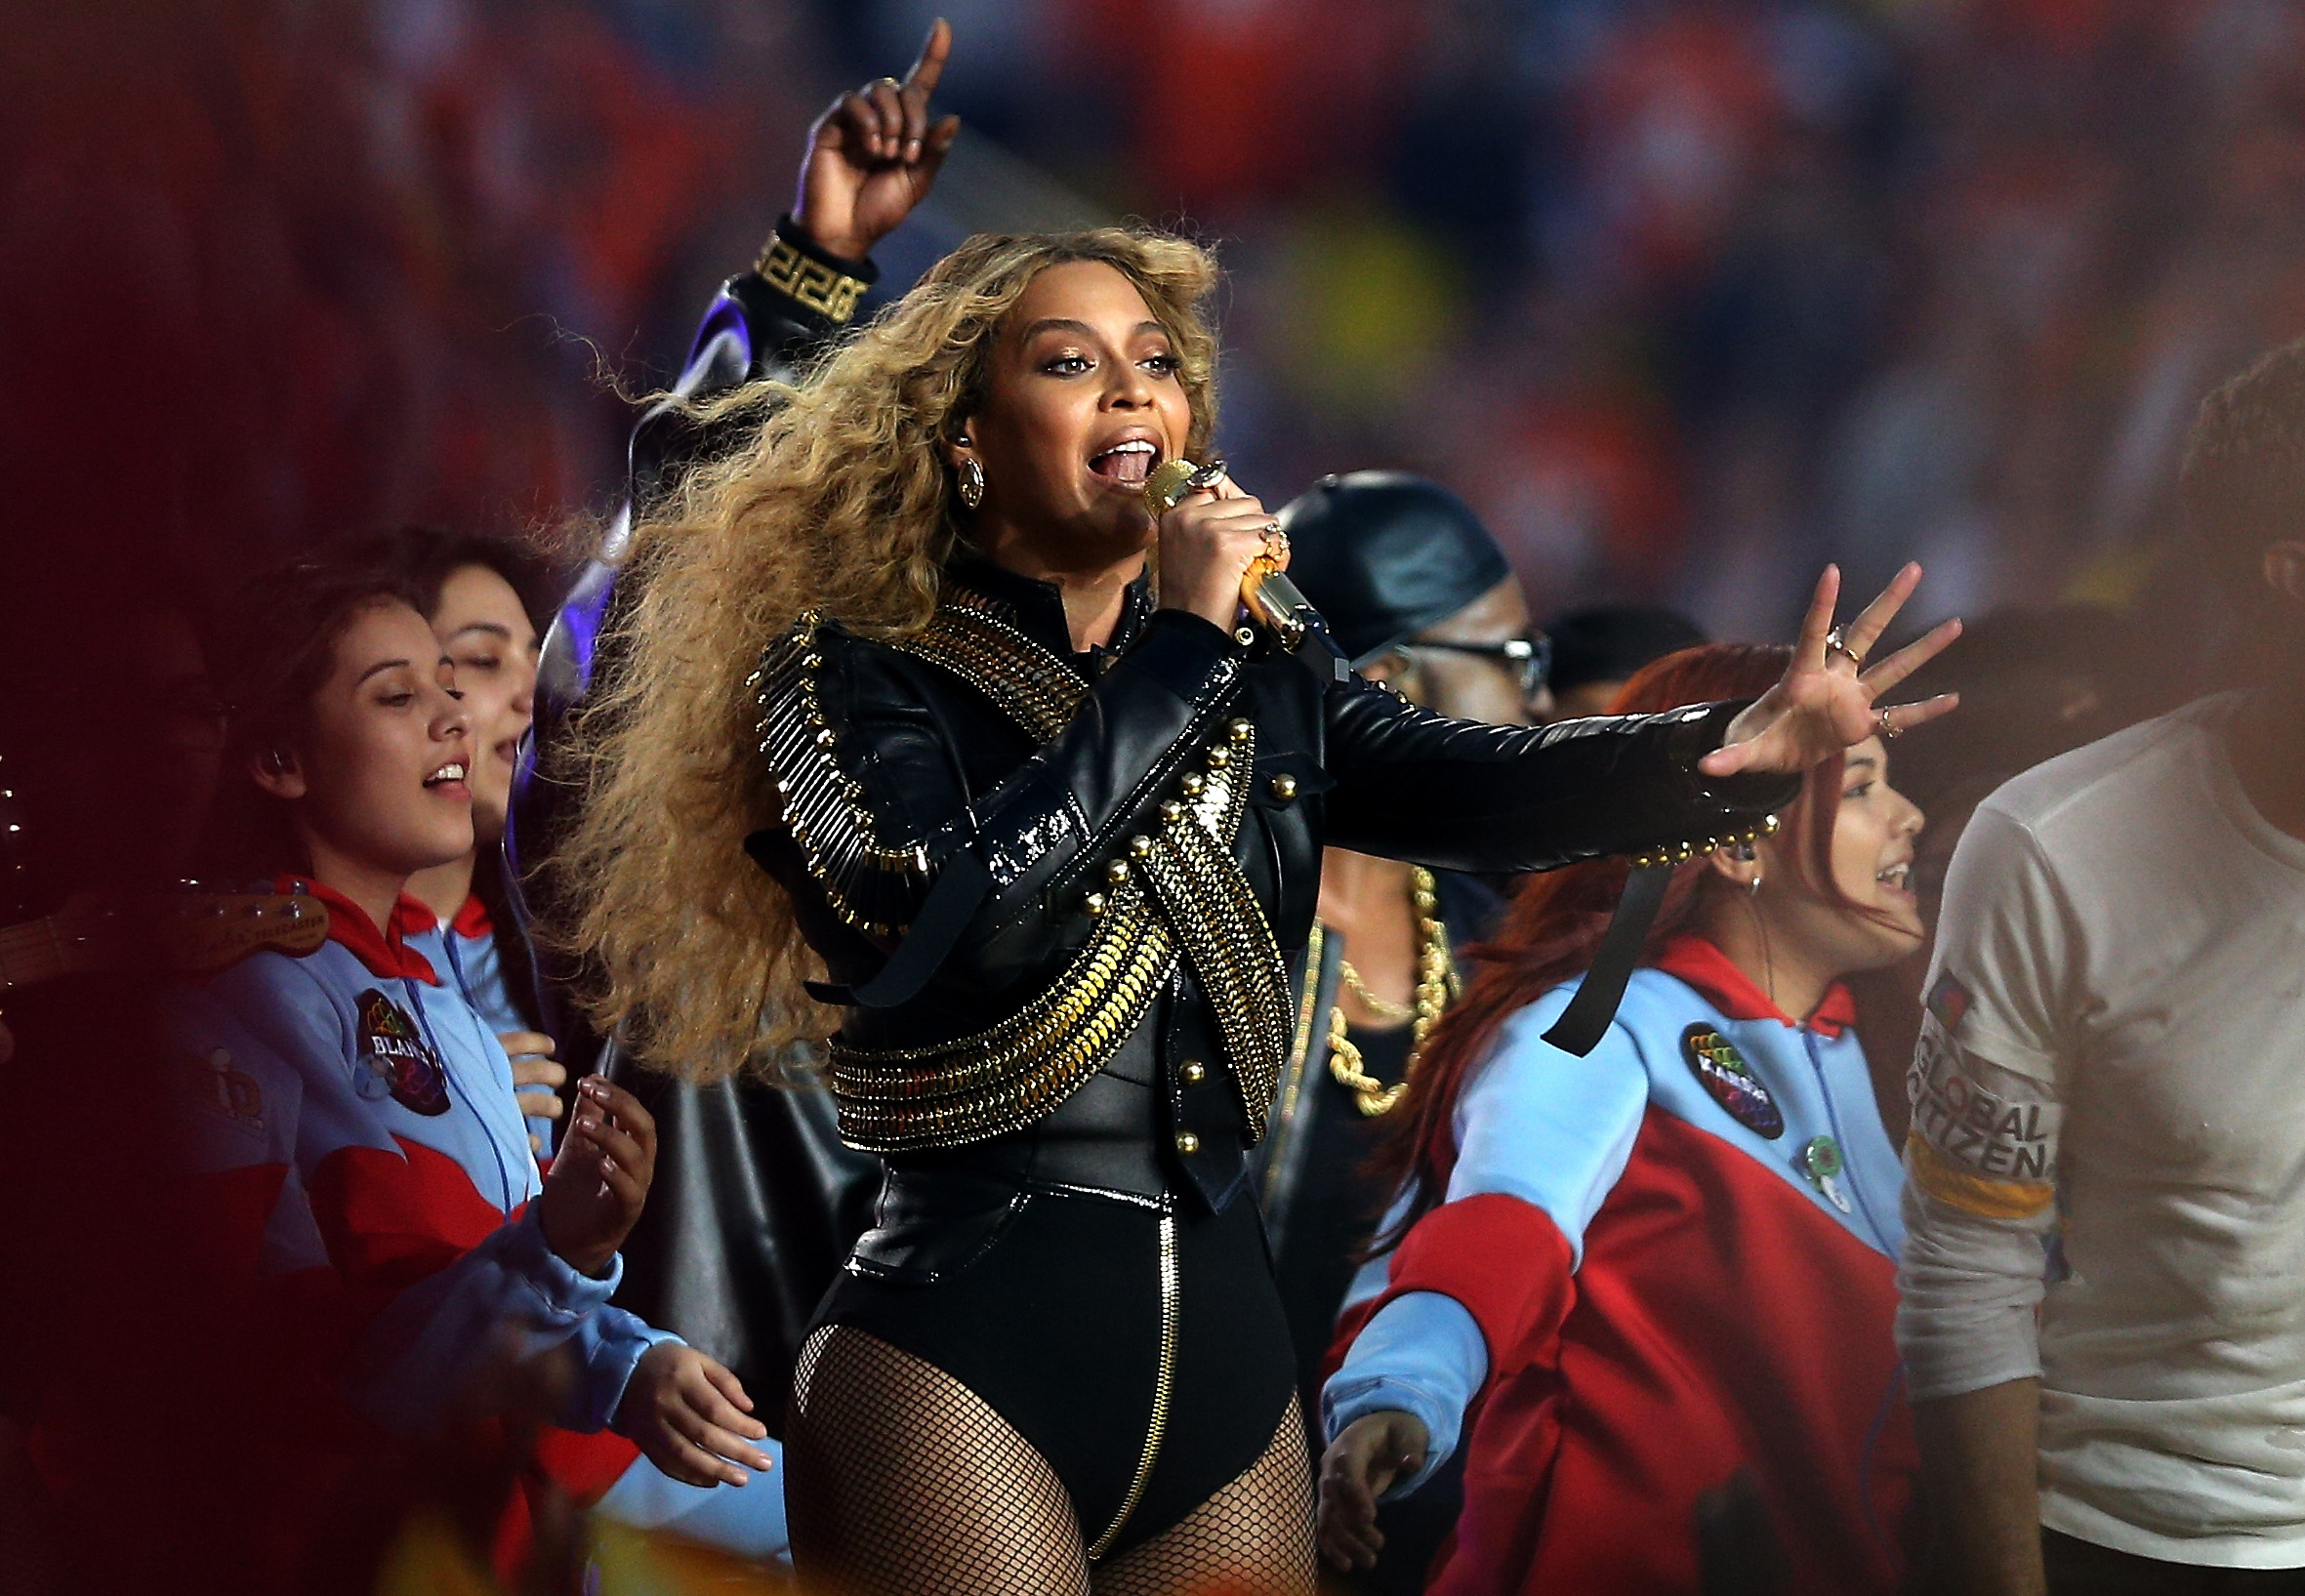 Beyoncé performs during the Pepsi Super Bowl 50 Halftime Show at Levi's Stadium in Santa Clara, Calif., on Feb. 7, 2016